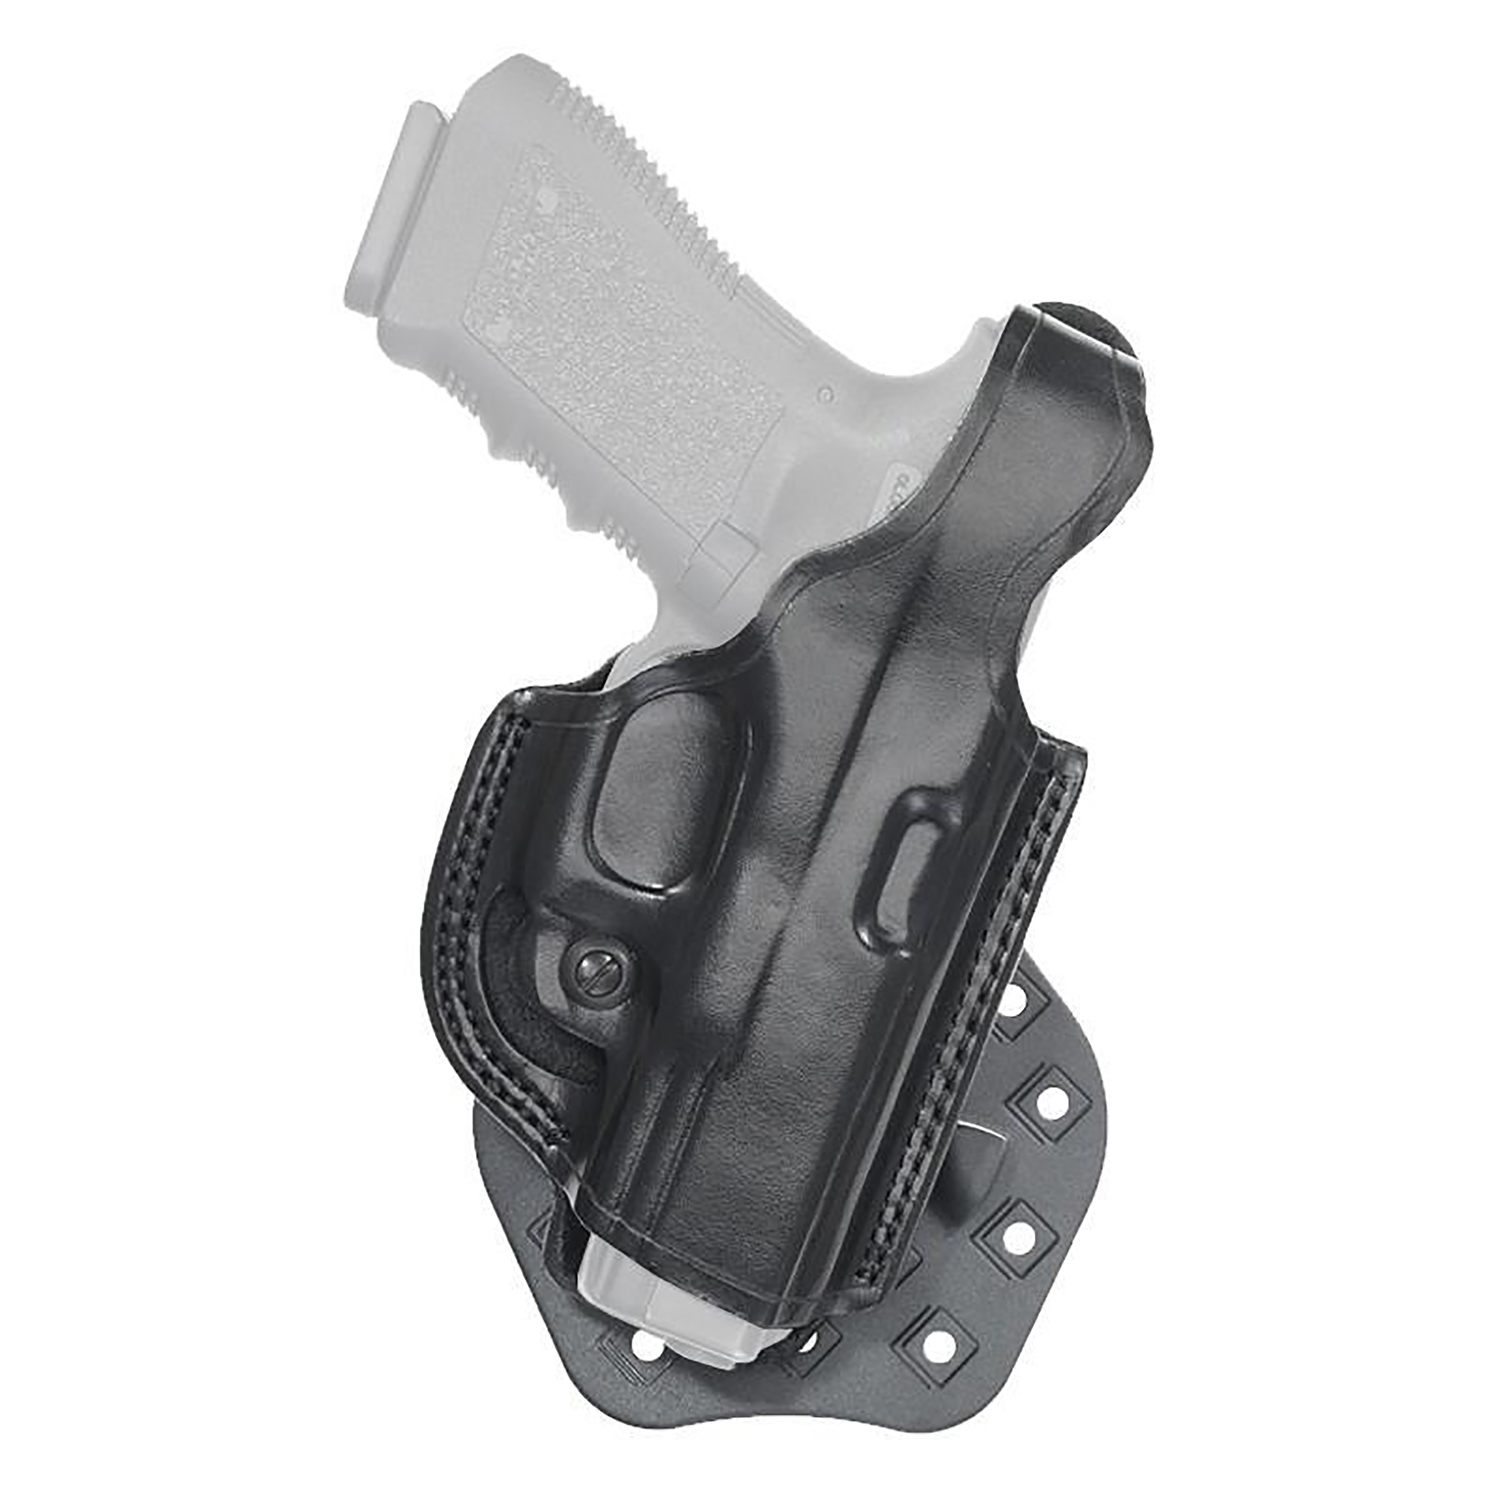 Aker 268a Flatside Paddle XR17 with Thumbstrap